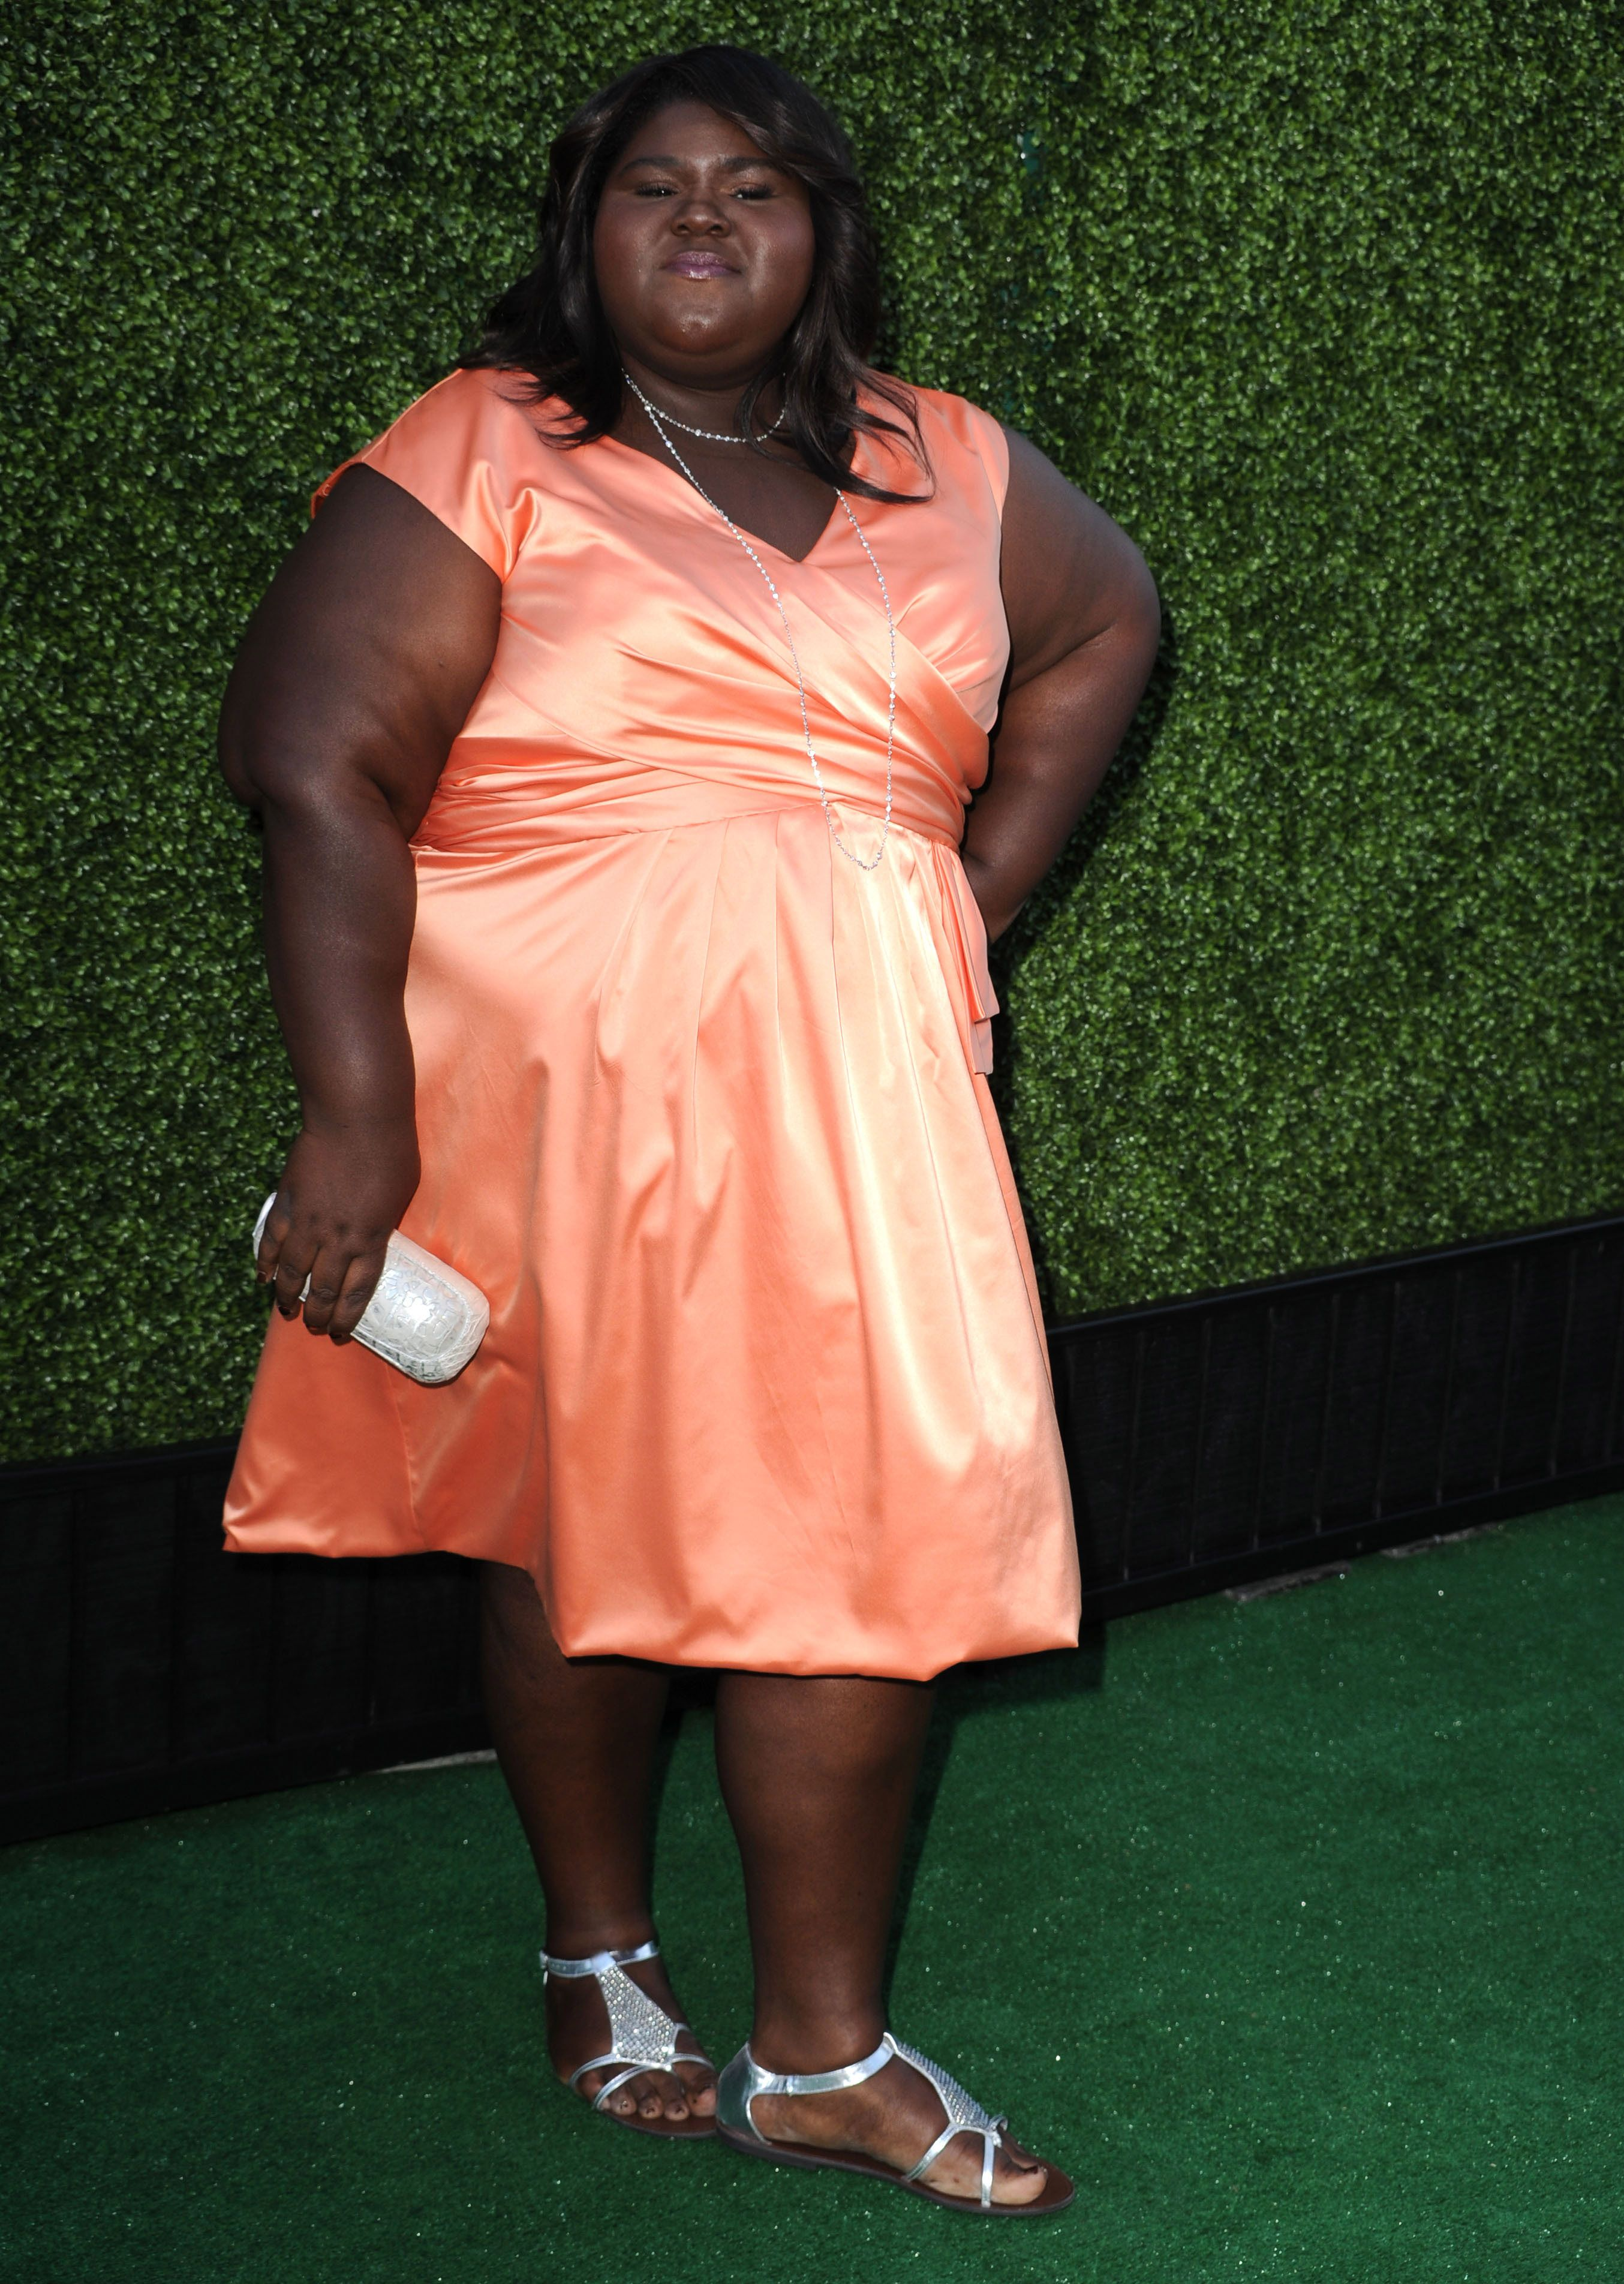 Gabourey Sidibe attends the 2010 CBS Summer Press Tour Party at The Tent on July 28, 2010 in Beverly Hills, California. | Source: Getty Images